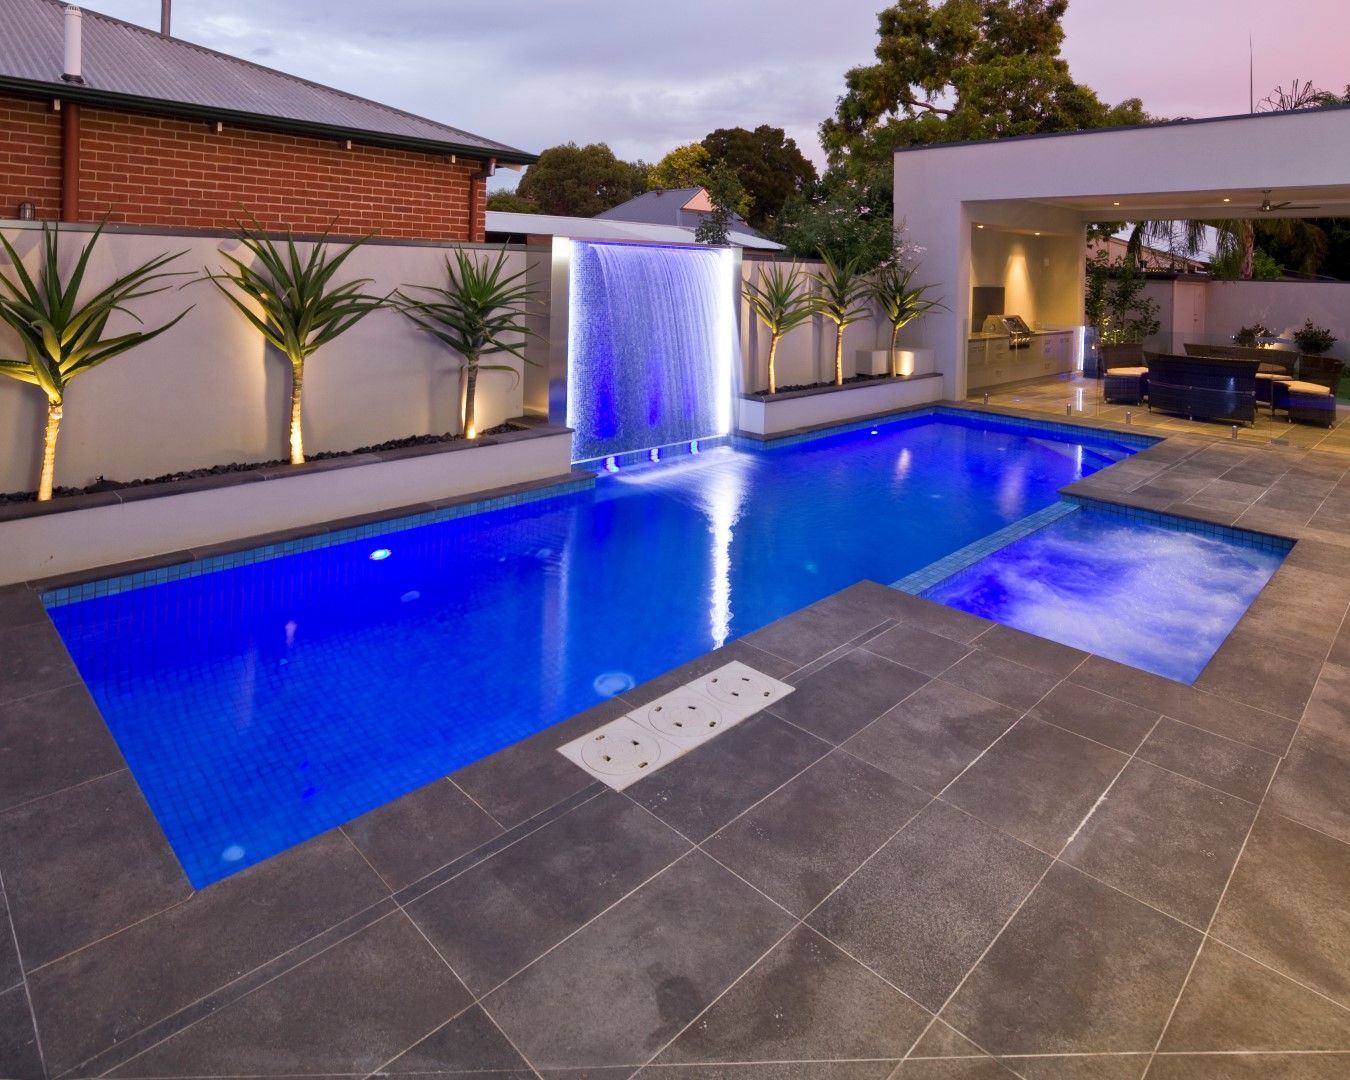 ConcretePool #SwimmingPool #FreedomPools | Resort Pools ...